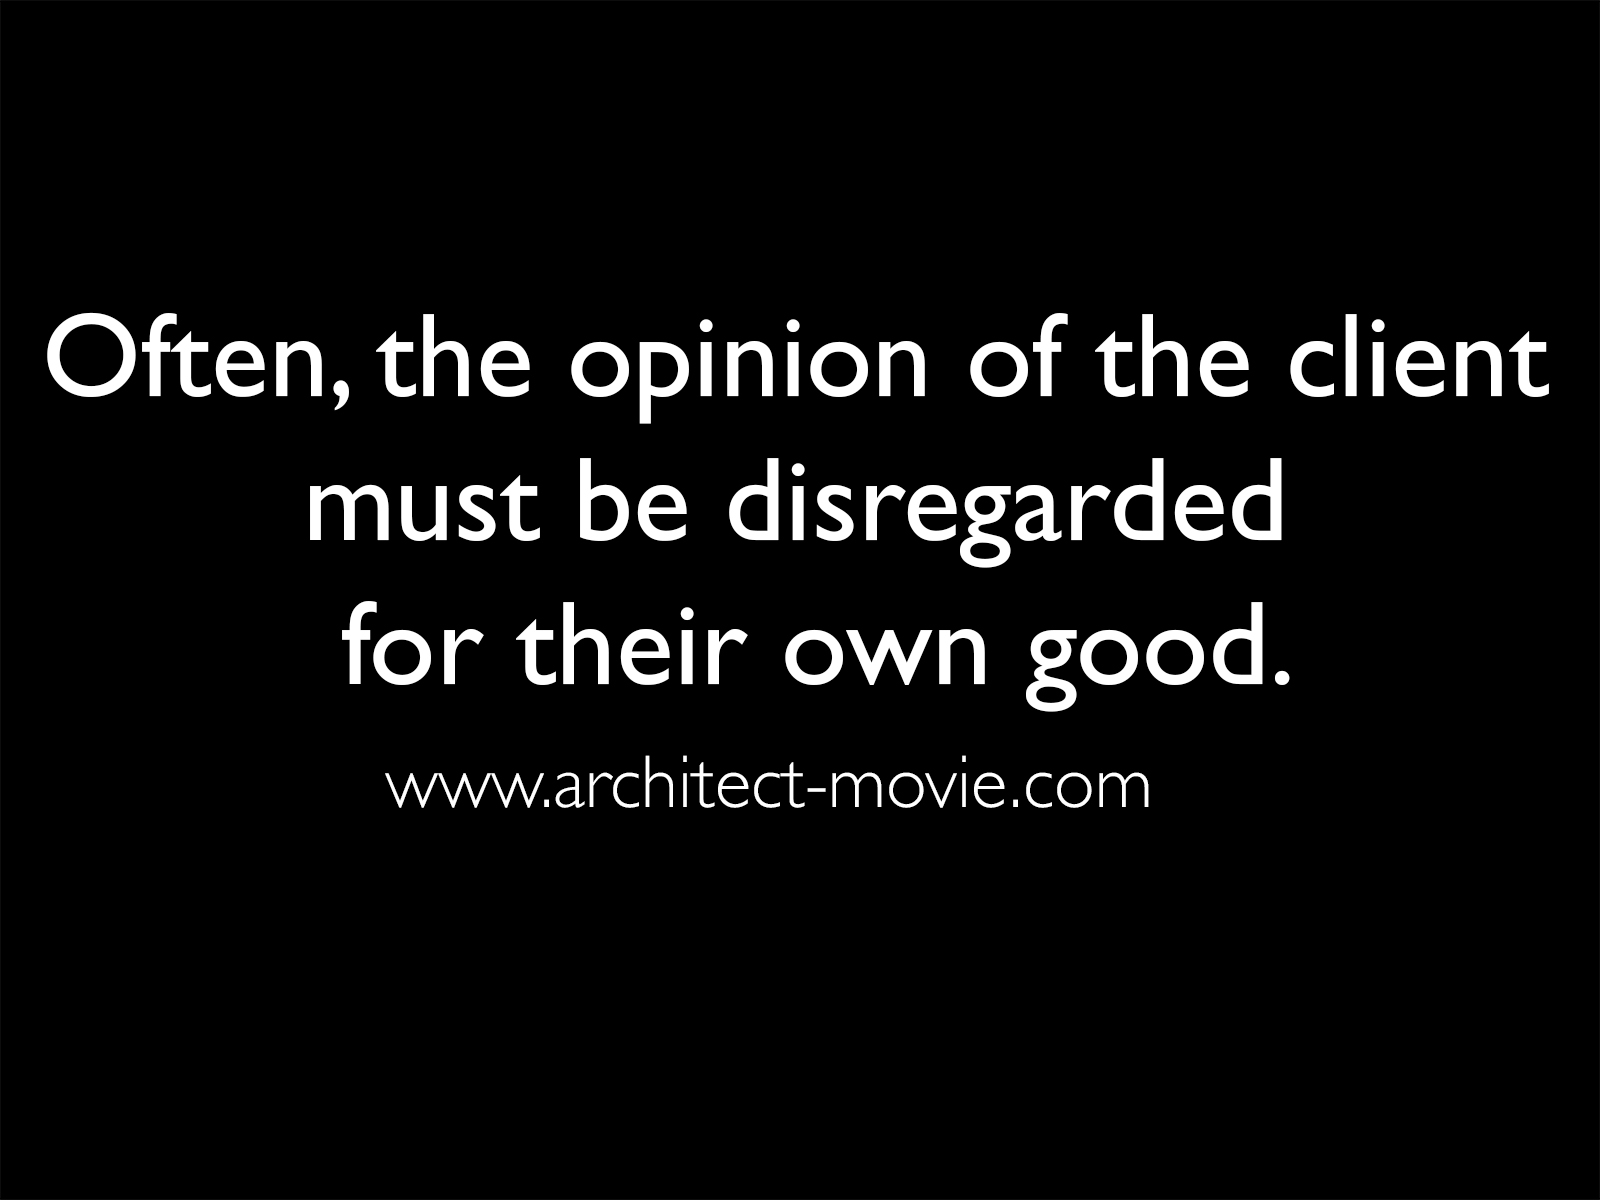 Quote from The Architect